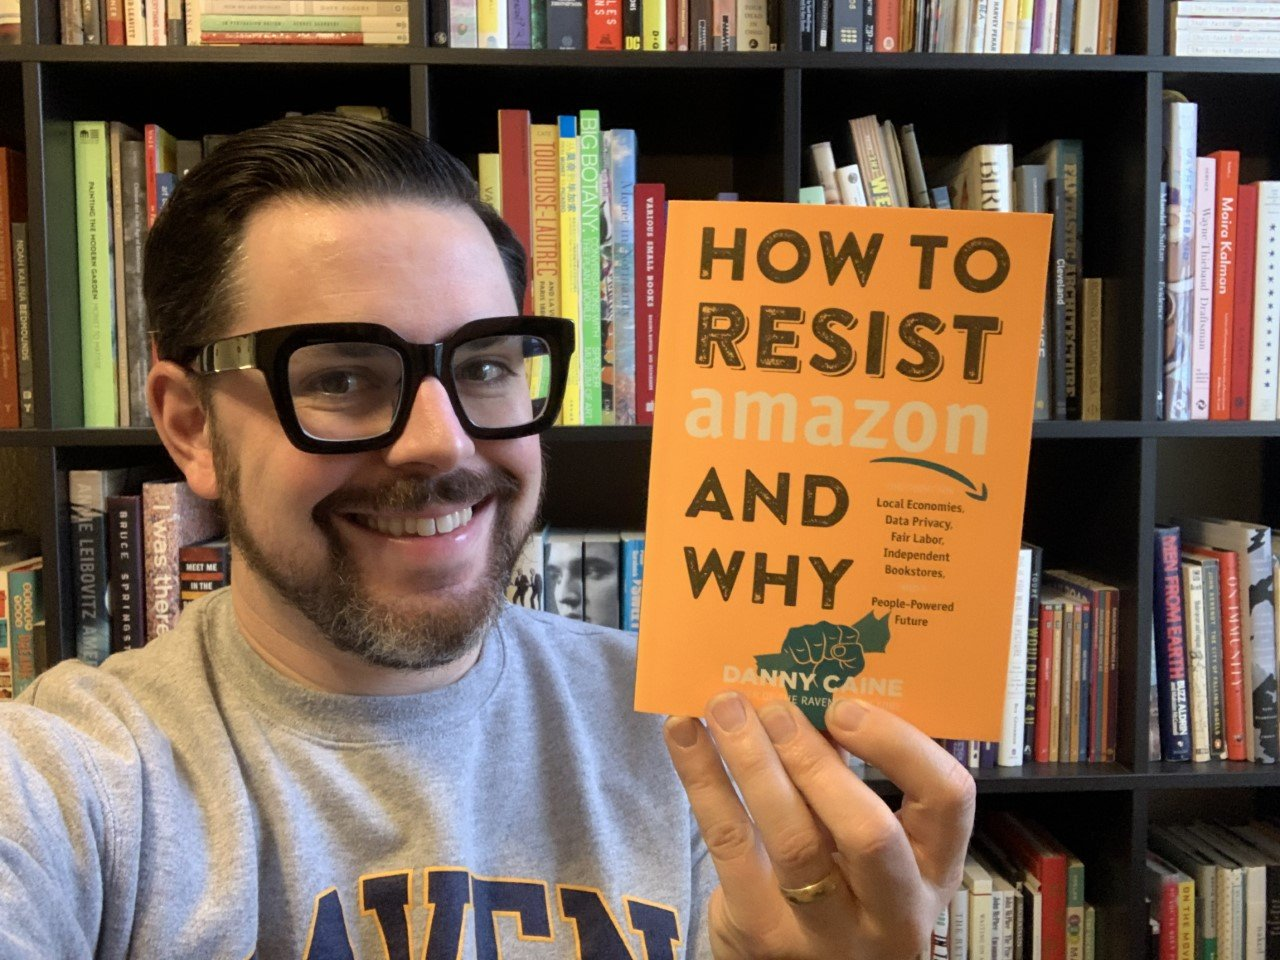 Picture description is Danny Caine holding up book, standing in front of bookshelves